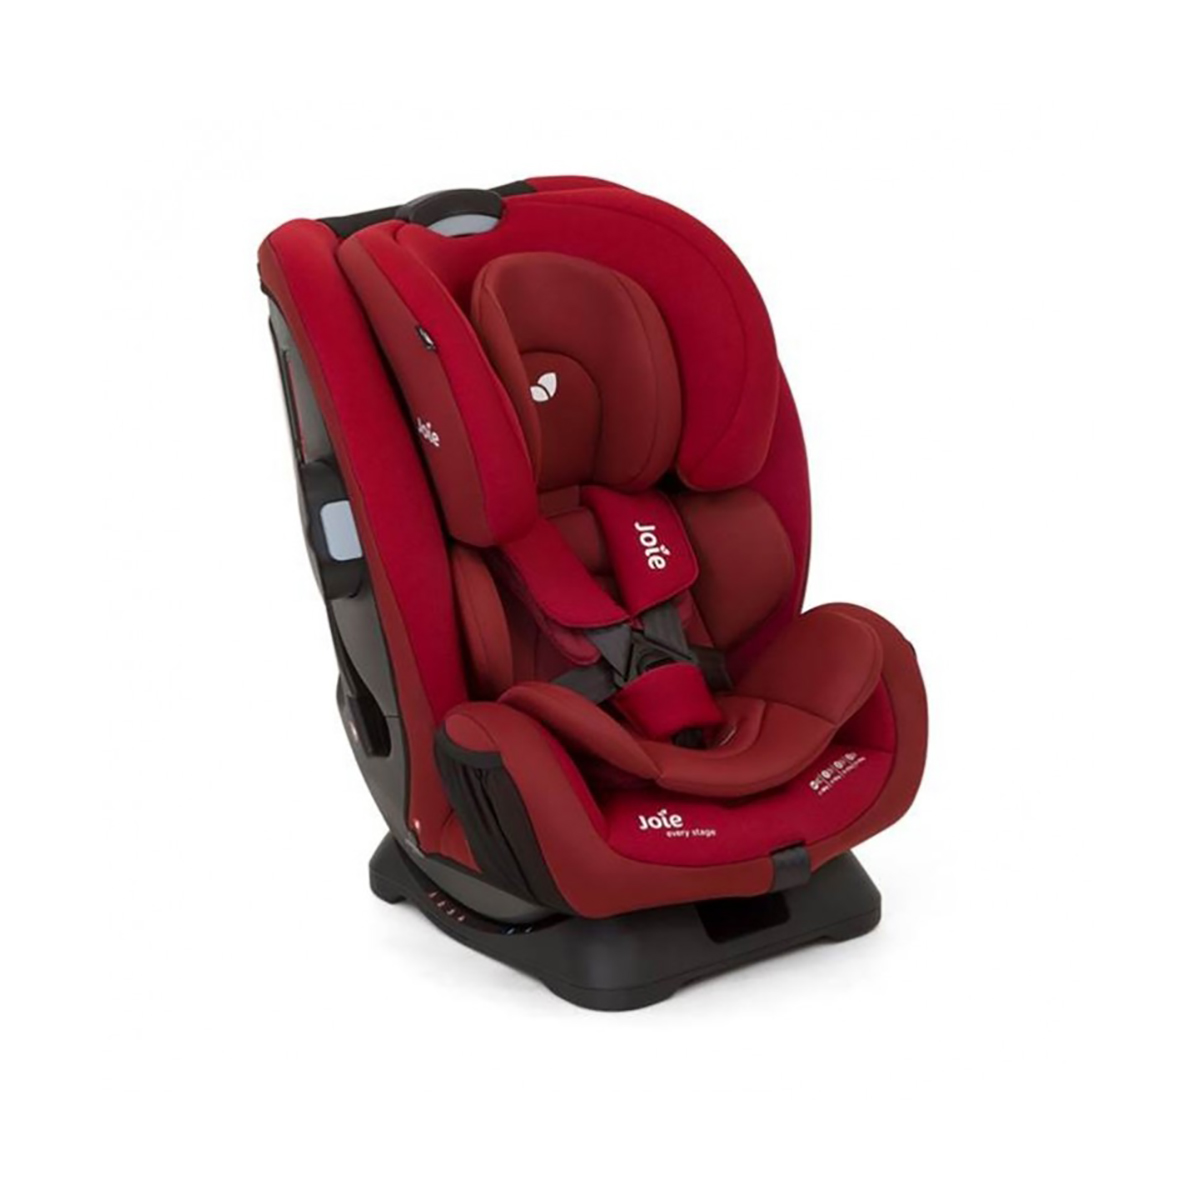 Scaun auto Joie Every Stages Cranberry, 0-36 Kg